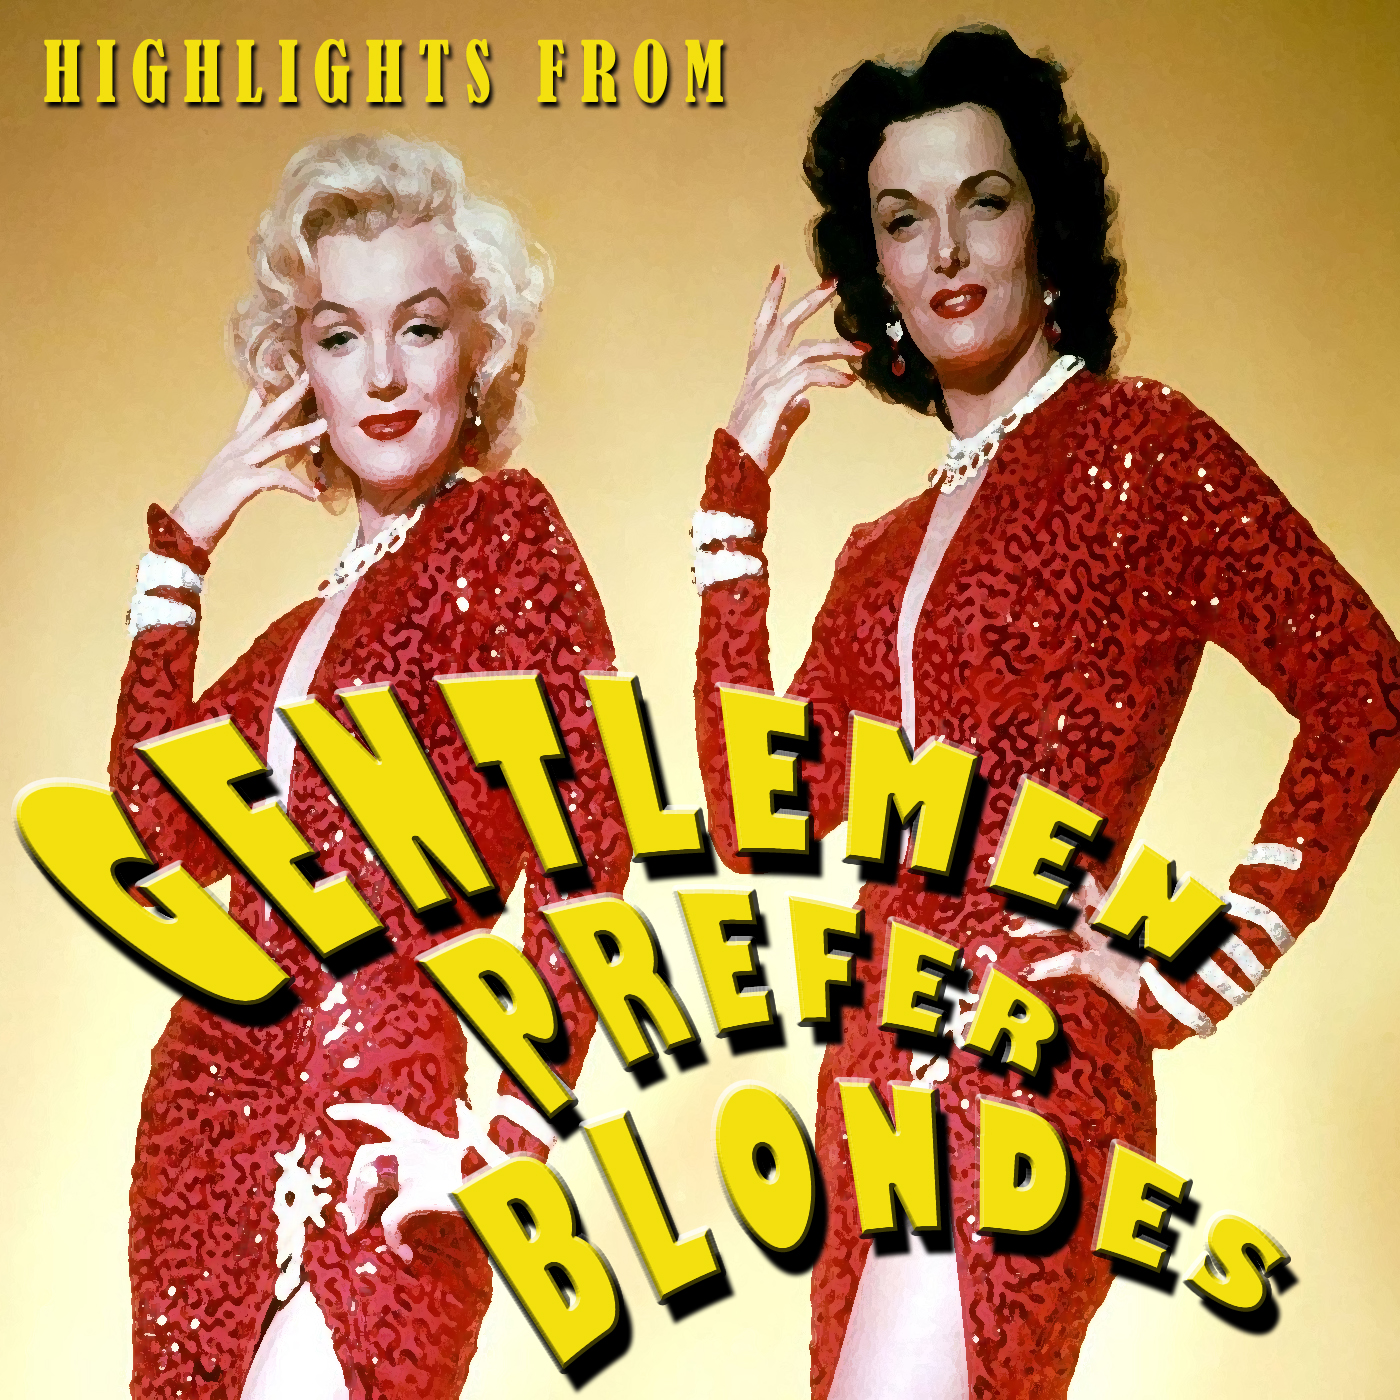 Revisiting Gentlemen Prefer Blondes: I was there for love